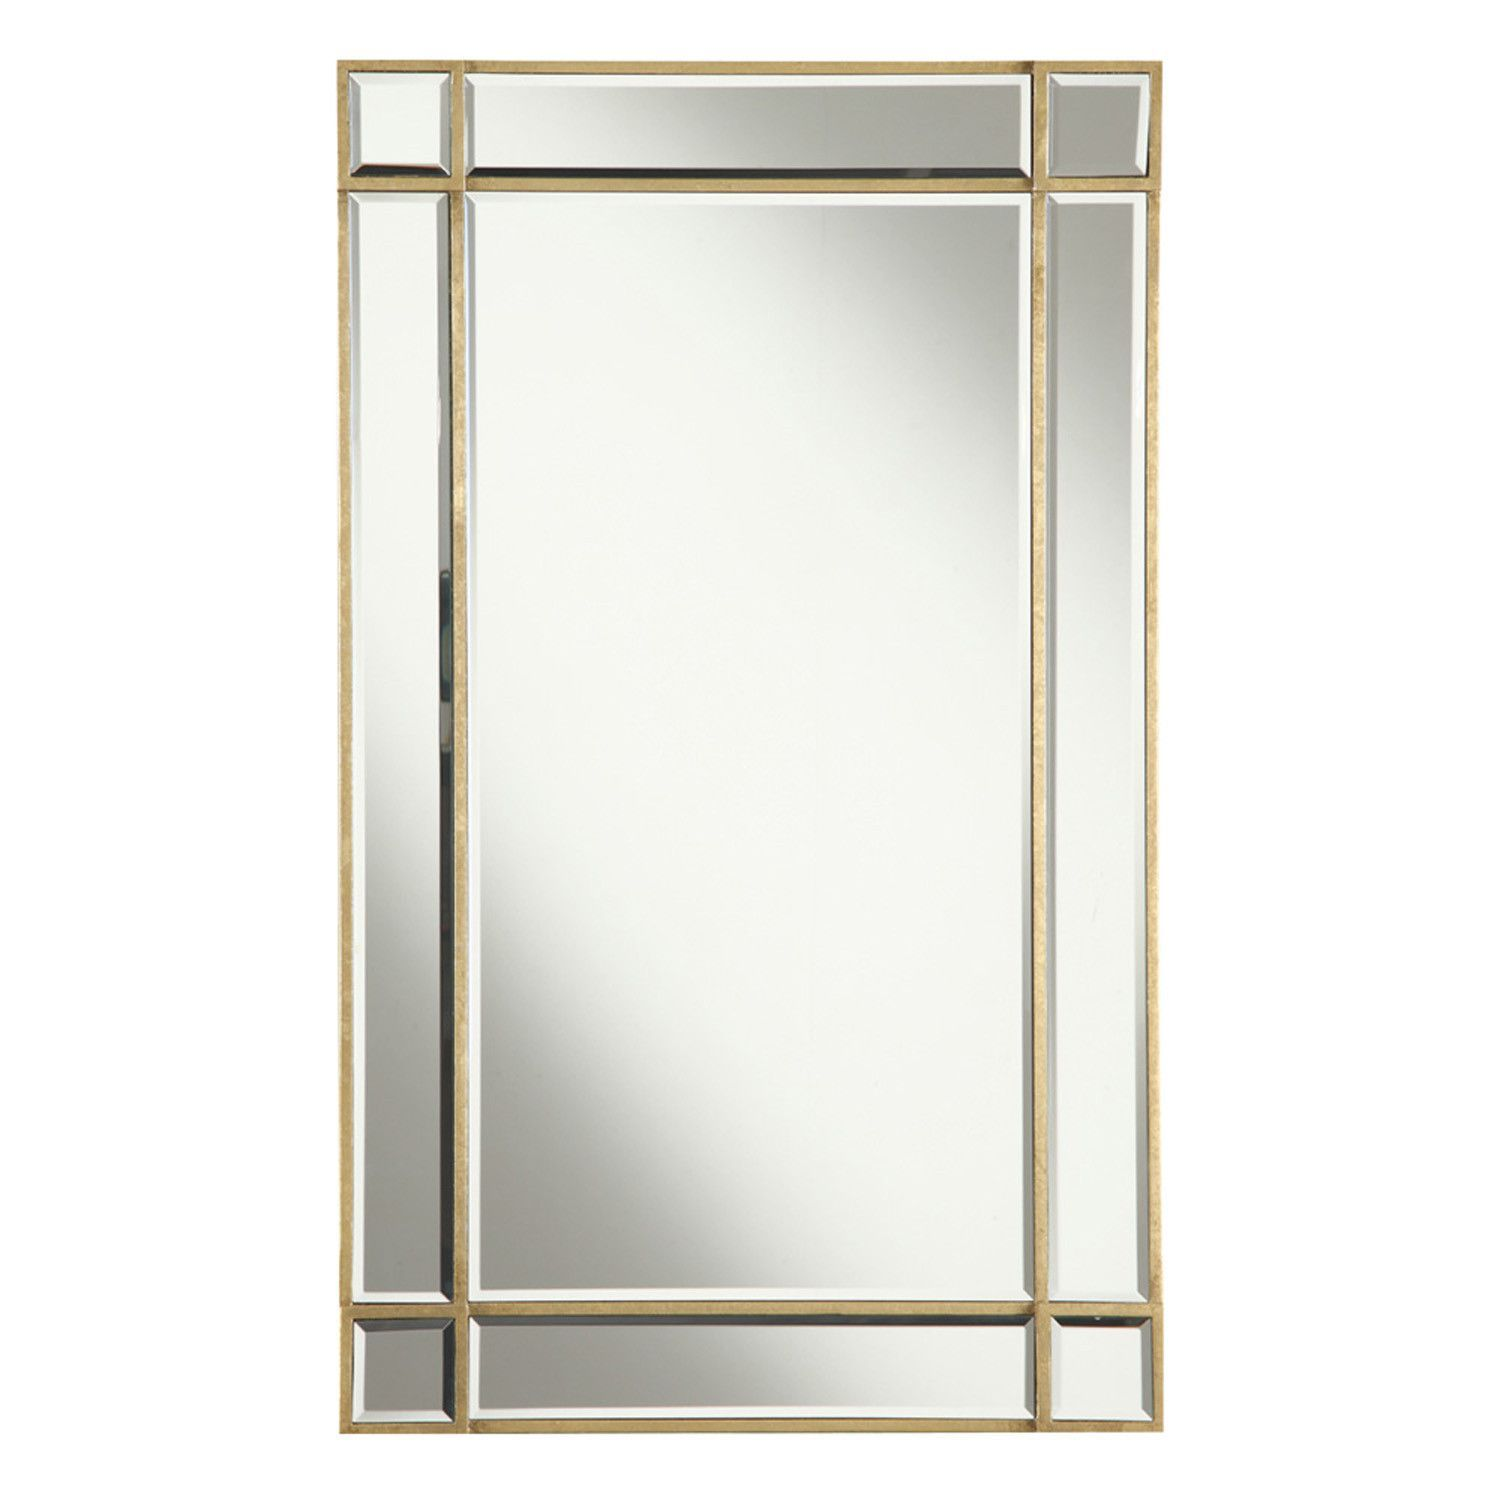 "Elegant Lighting - Rectangular Mirror 22"" x 0.75"" x 36""H, Gold/Clear mirror. The Florentine Collection is offered in your choice of aged mirror finish or clear. Dove-tailed drawers and hardwood construction are hidden details inside the beauty of the mirrored finish and gold leaf or silver leaf accents.Color:gold/clear mirrorDimensions:22""L x 0.75""W x 36""H"